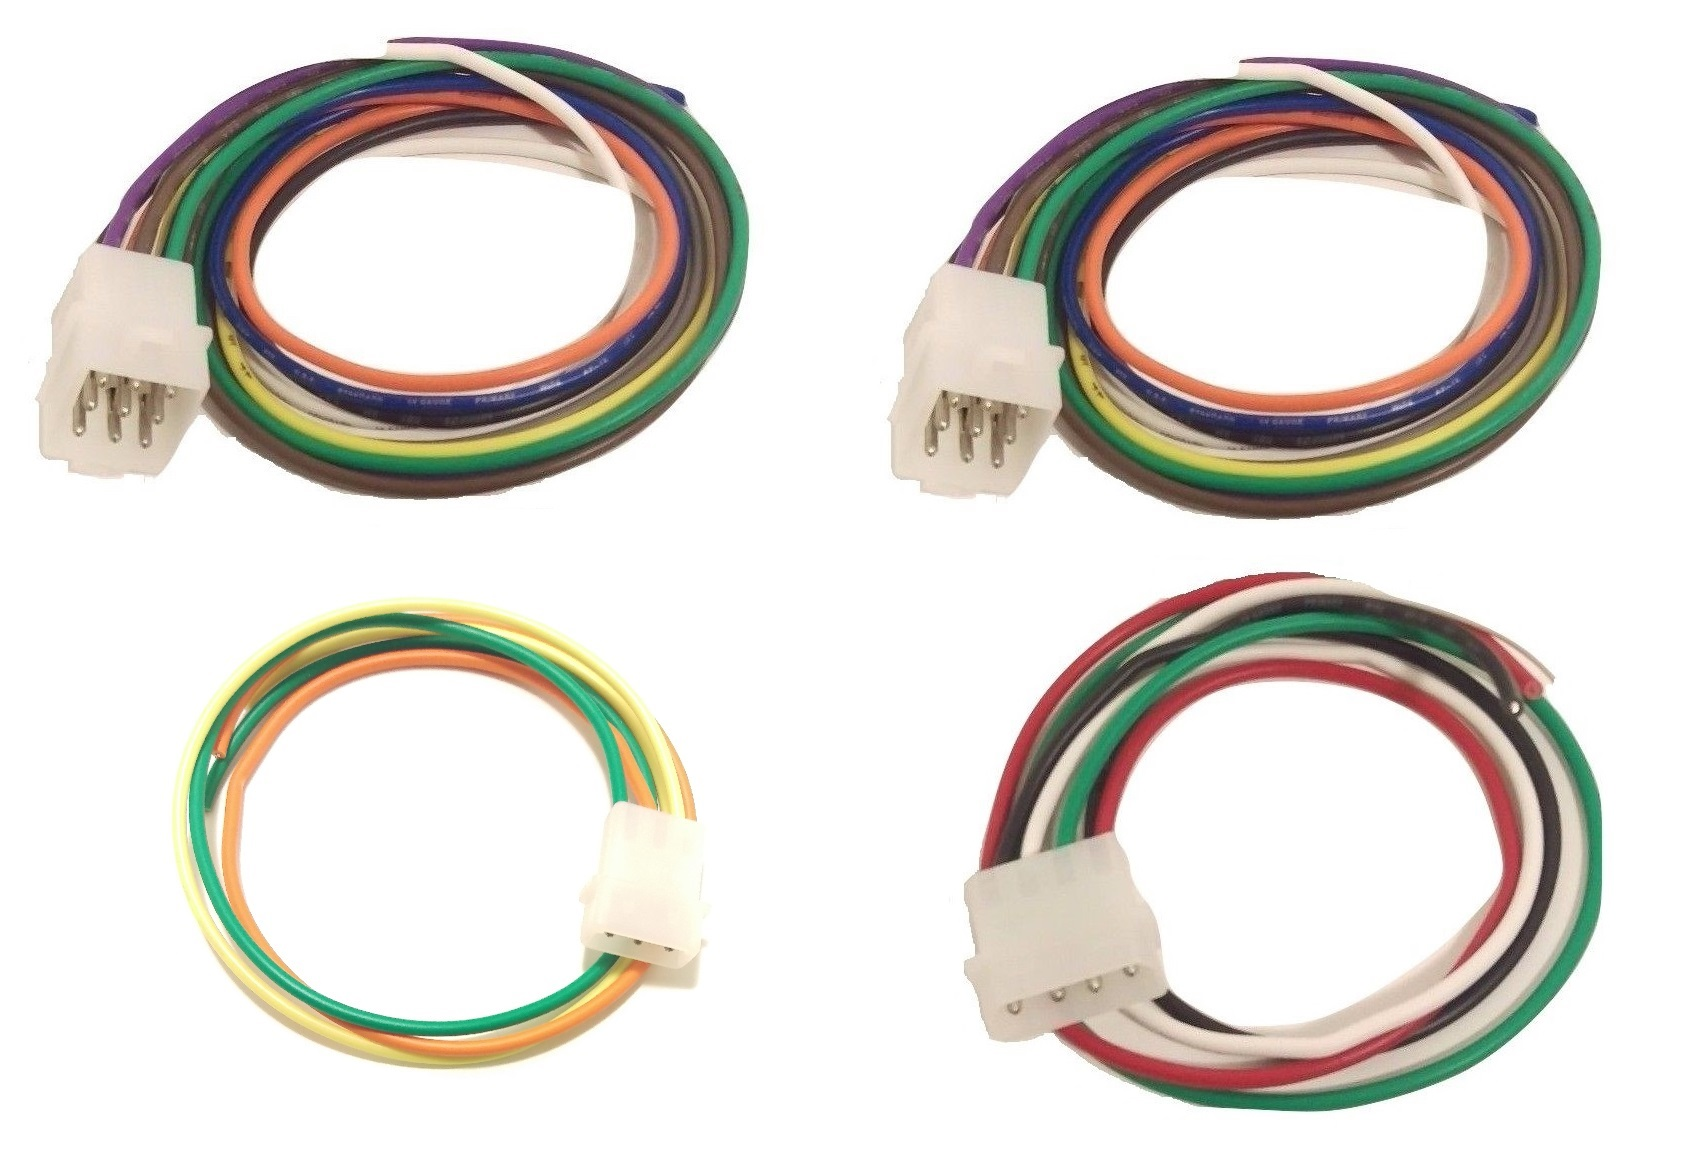 Whelen Power Harness Plug Cable 9 Pin X 2, 3 Pin, 4 Pin TACTL6 on